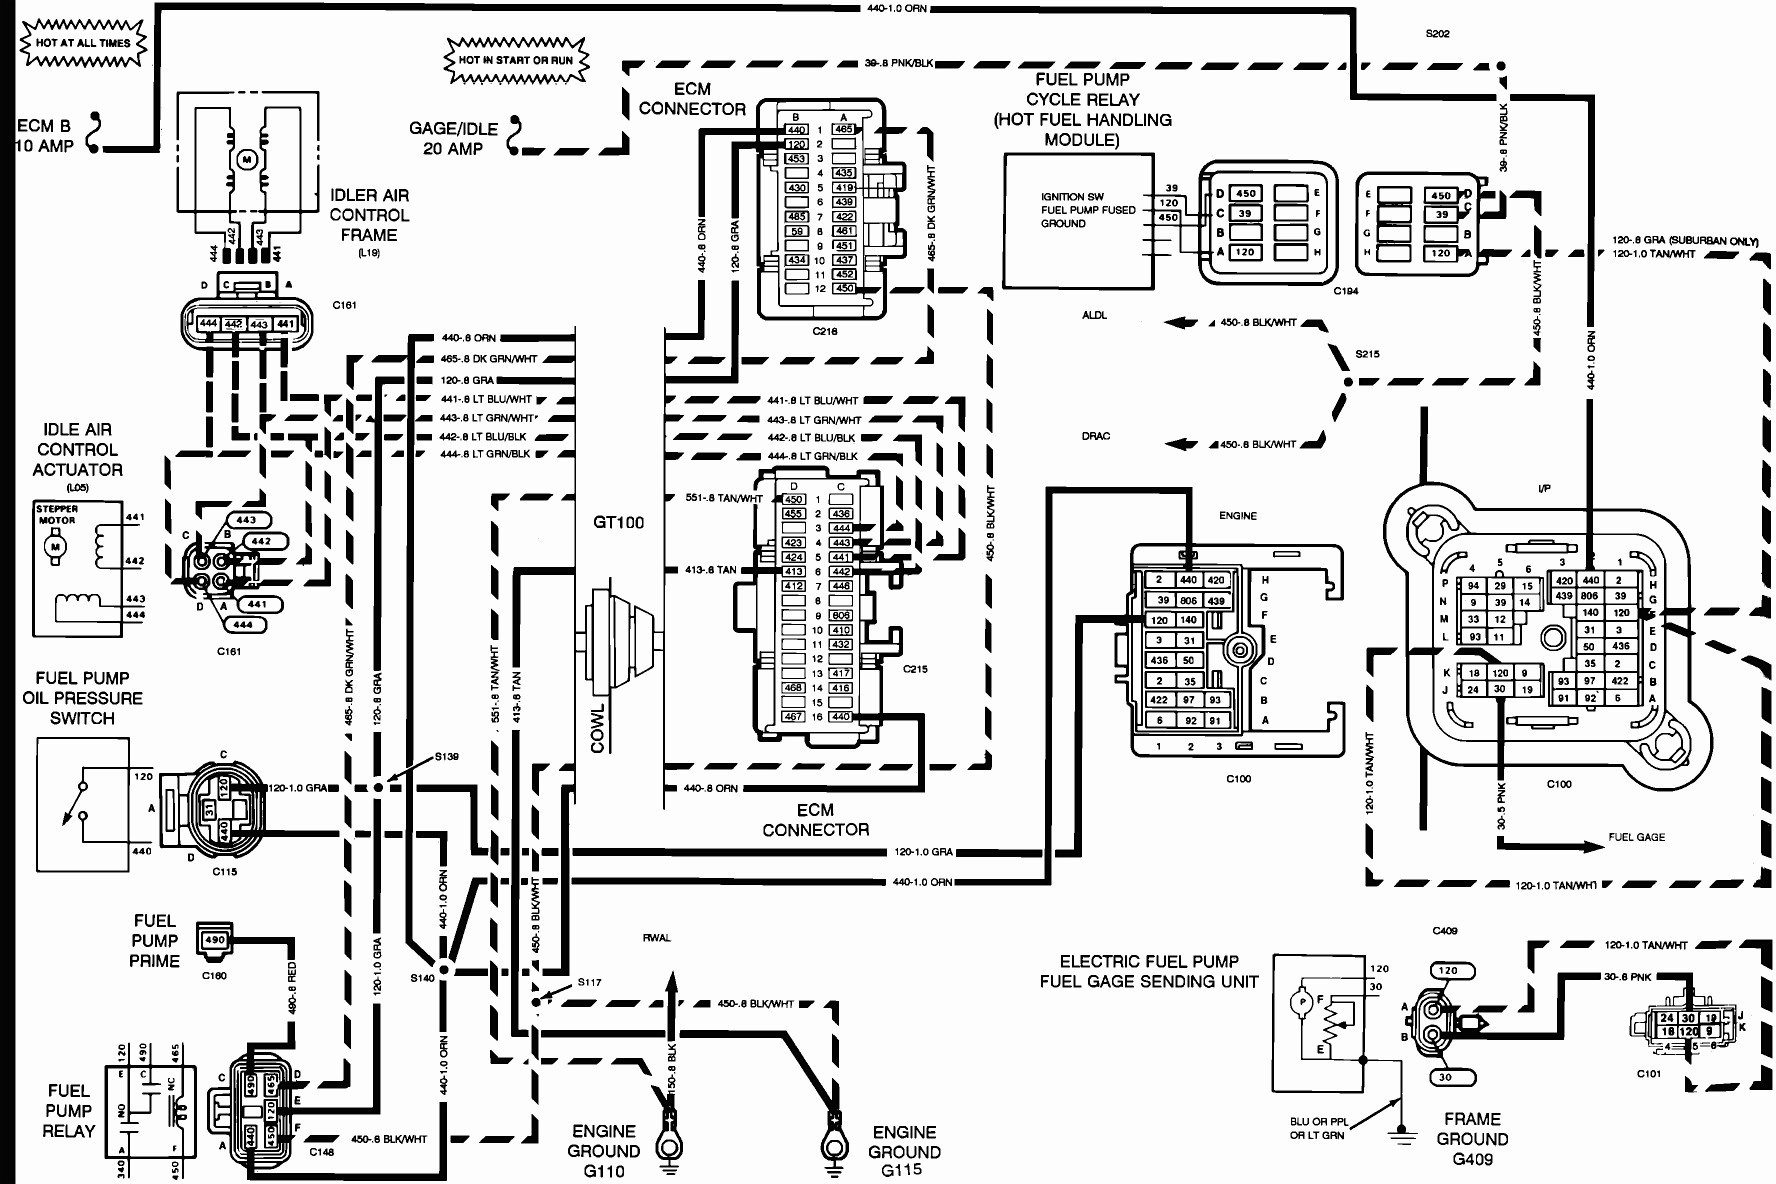 hight resolution of 1989 fleetwood rv wiring diagram wiring diagram showfleetwood rv wiring 12 volt wiring diagram sample 1989